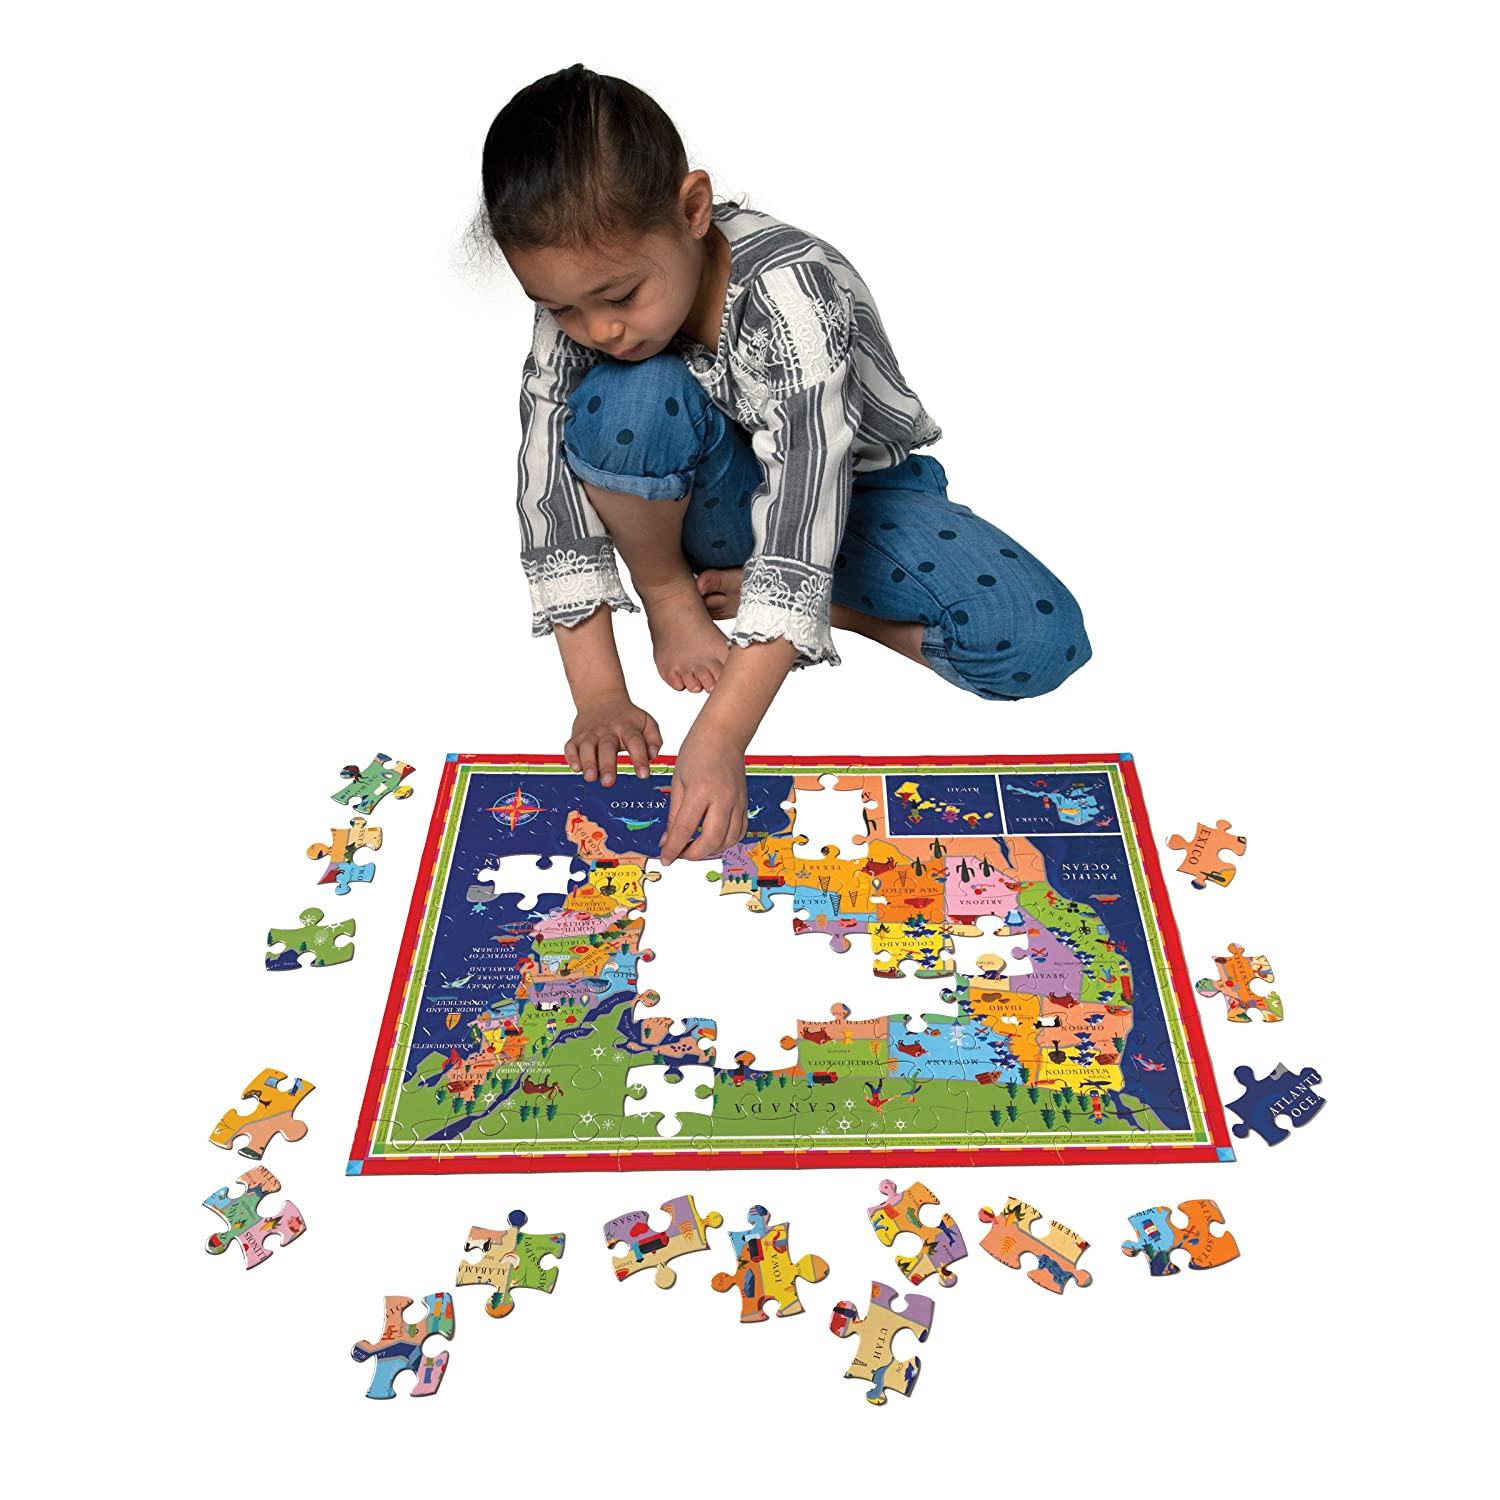 Amazoncom EeBoo United States Map Puzzle  Pieces Toys  Games - Florida map jigsaw puzzle